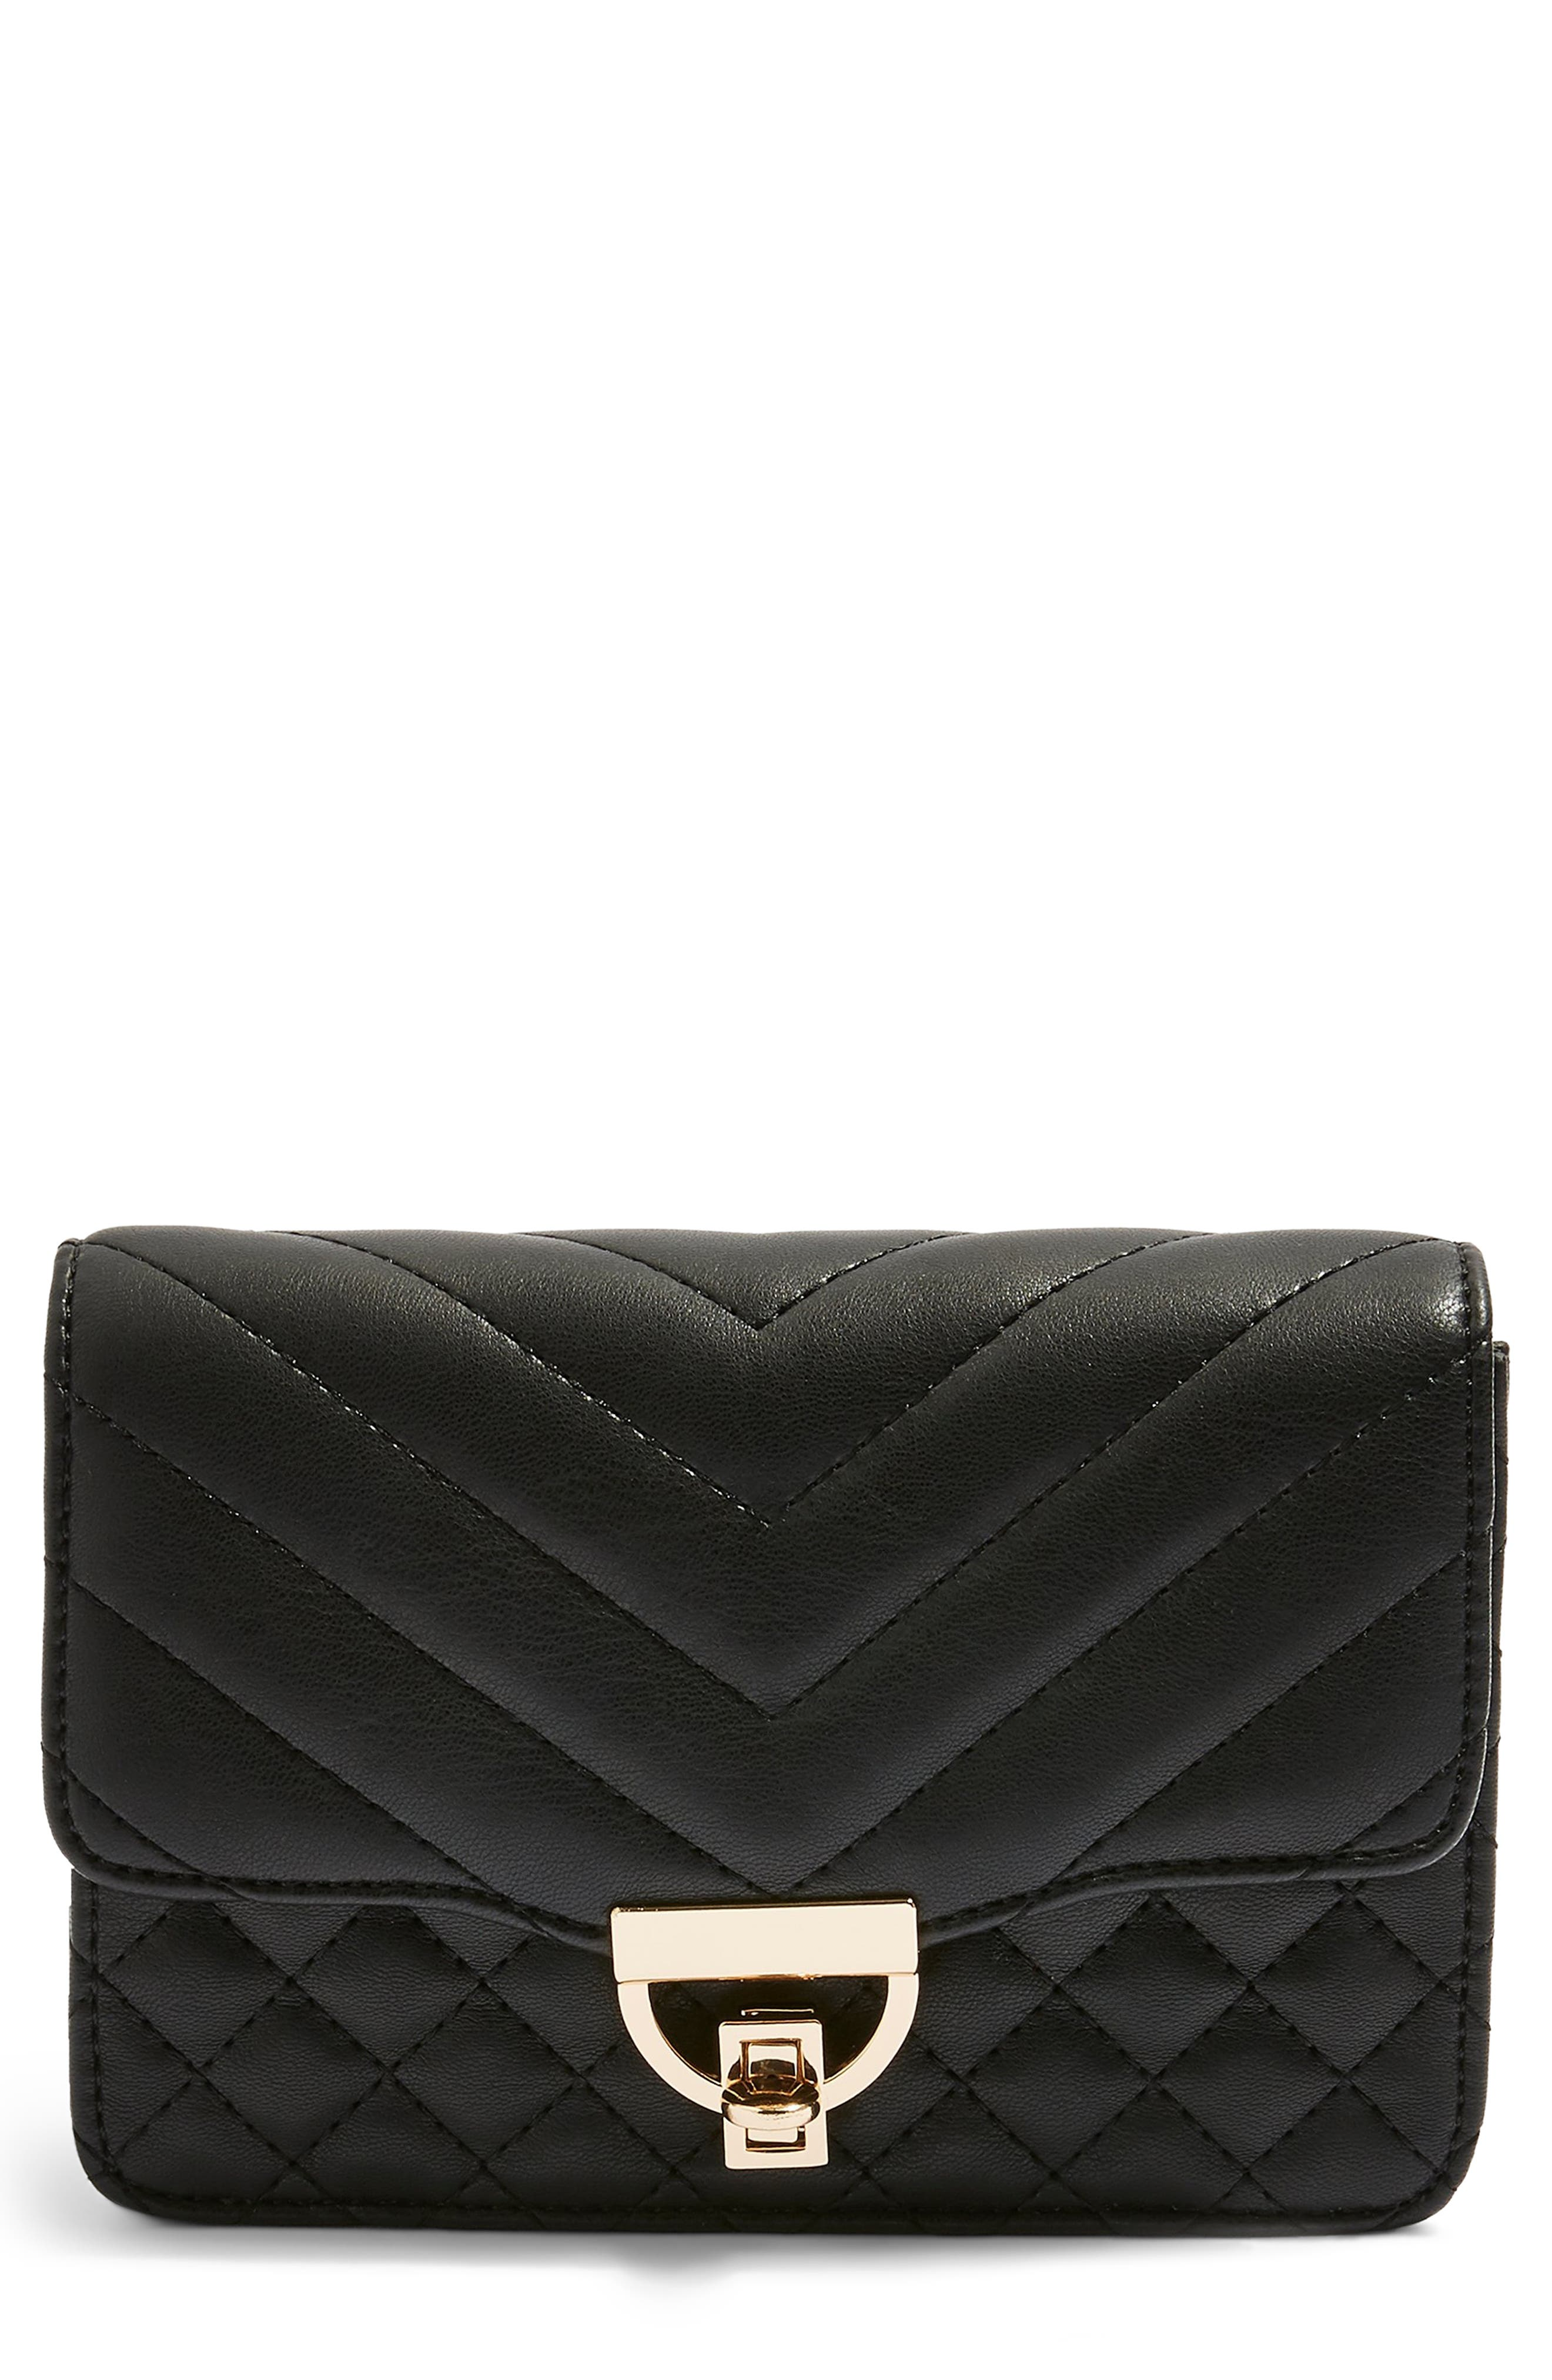 Prince Quilted Belt Bag,                             Main thumbnail 1, color,                             BLACK